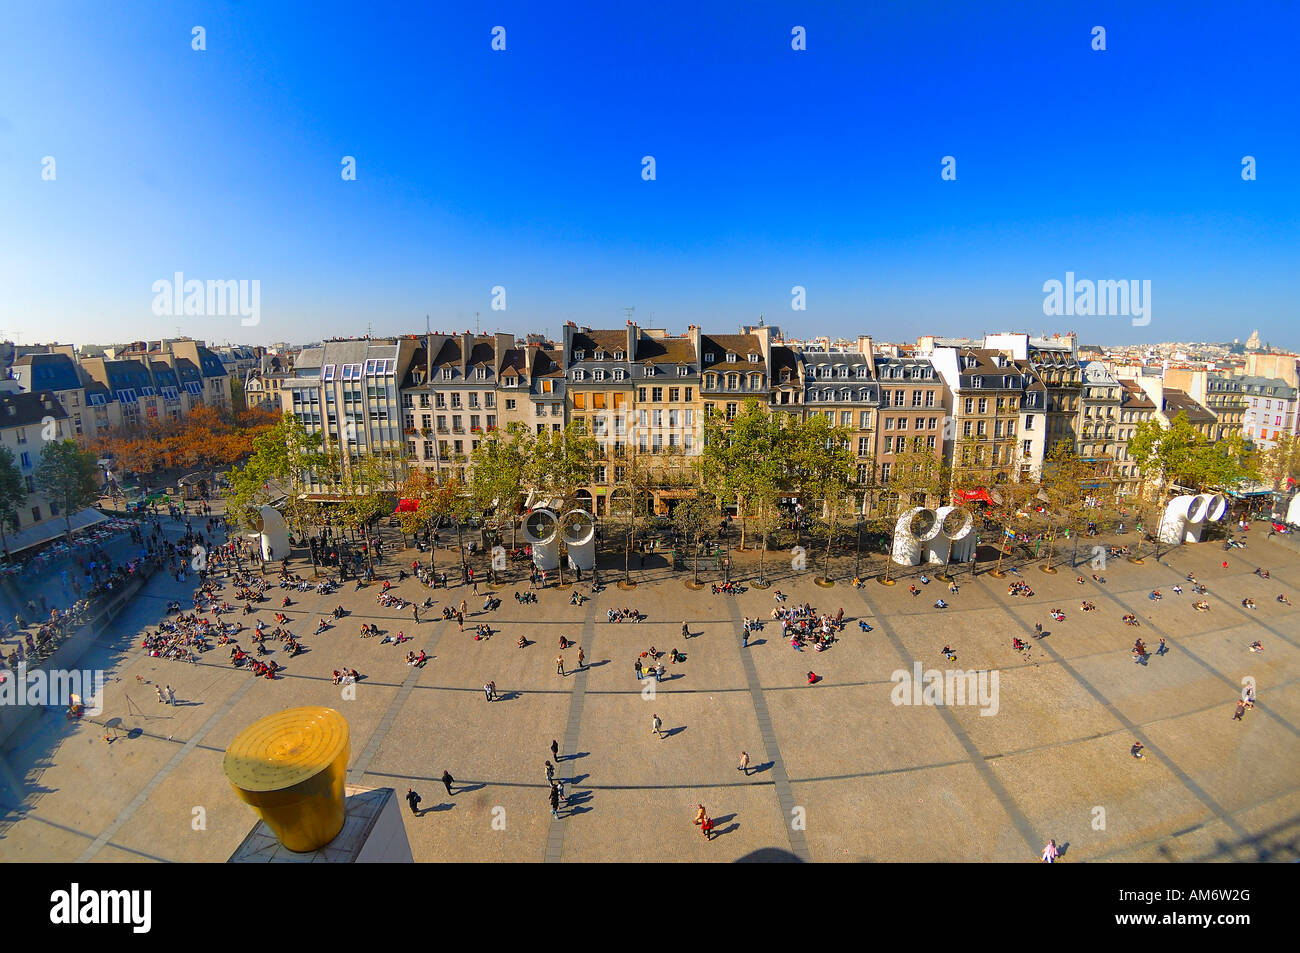 The piazza in front of the Pompidou Centre with its many street performers and other entertainments is very popular - Stock Image